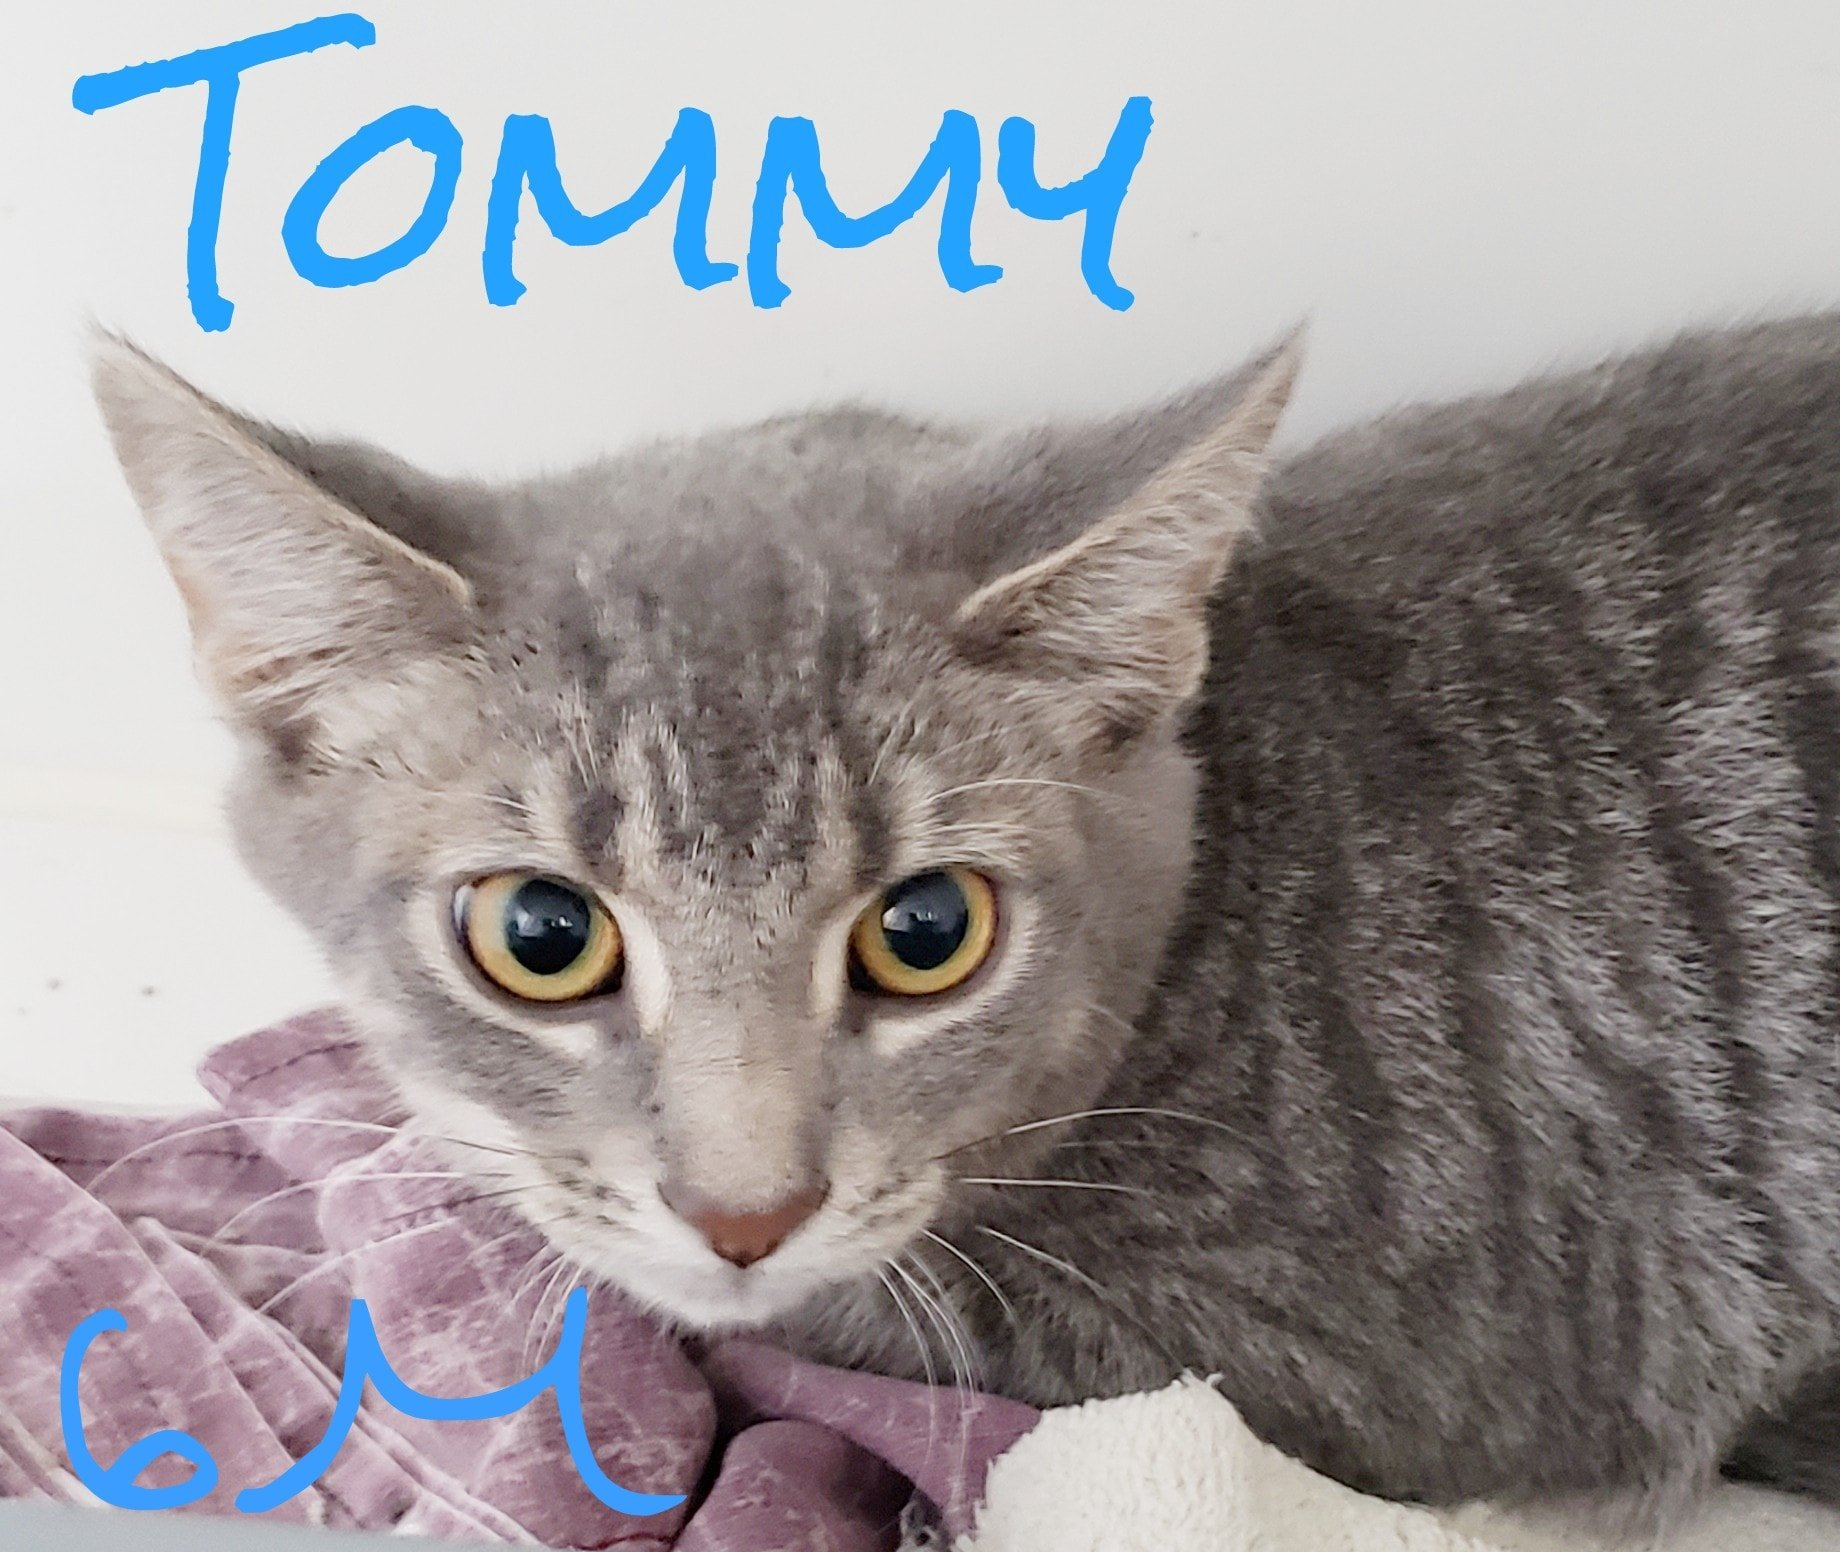 Tommy-Male-Born in April 21